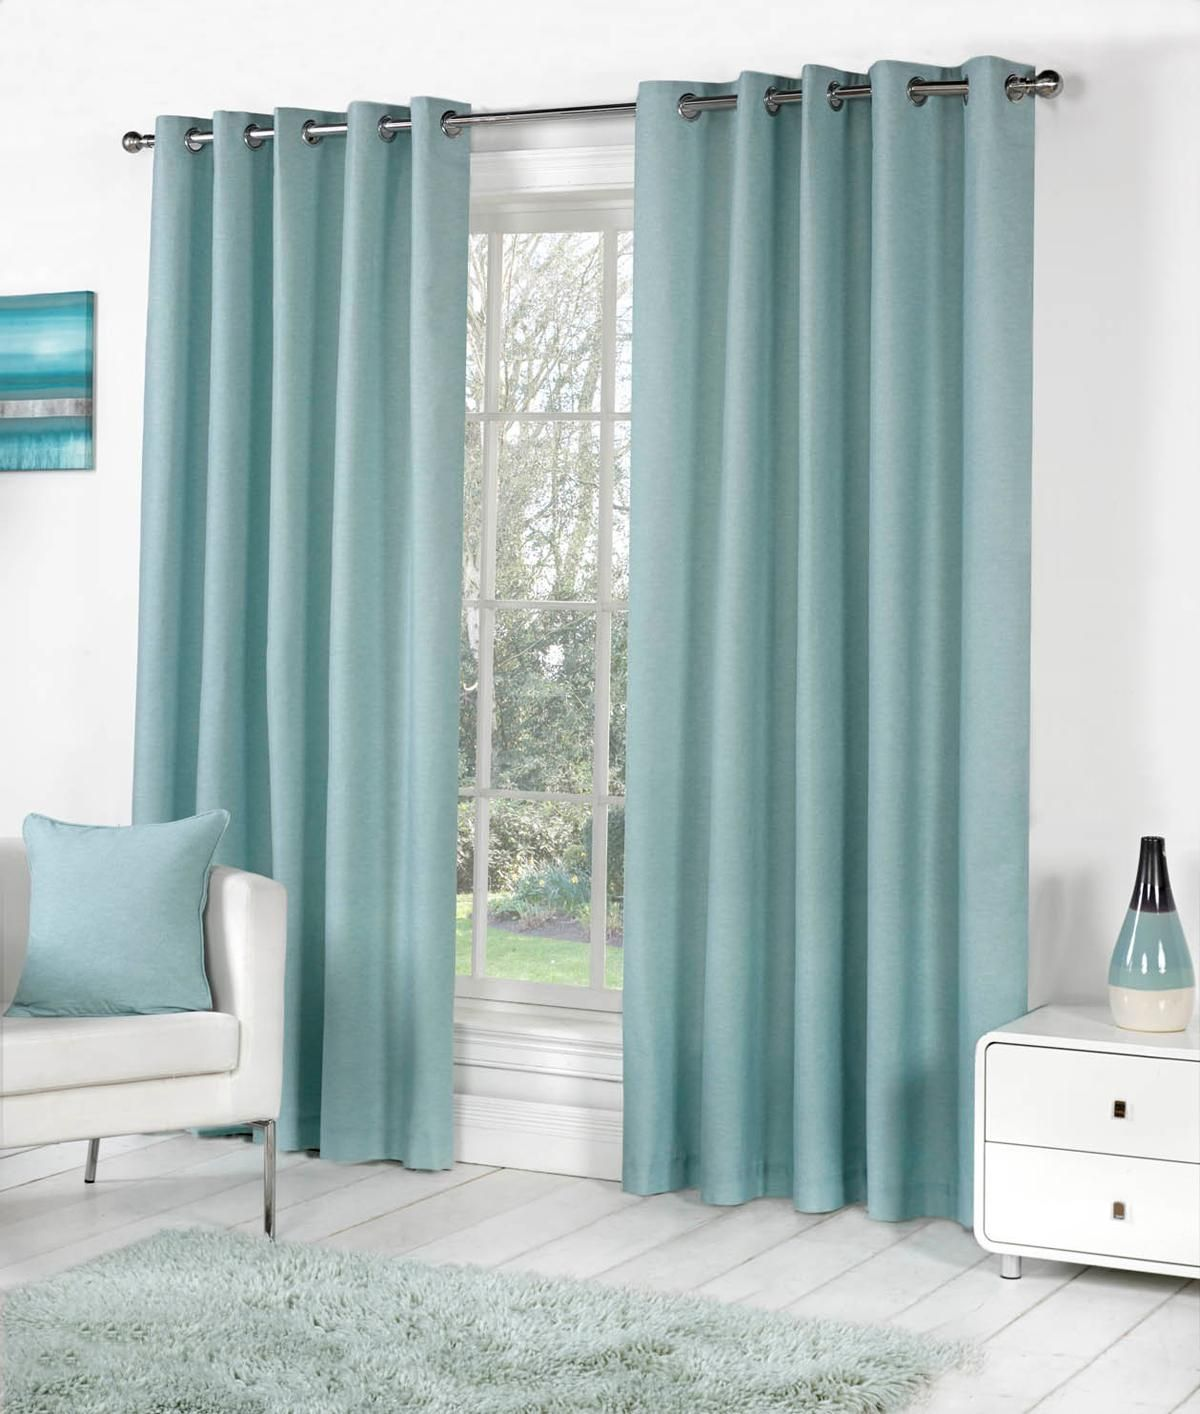 Teal Silver Curtains Sorbonne Ready Made Lined Eyelet Curtains Design Inspiration In